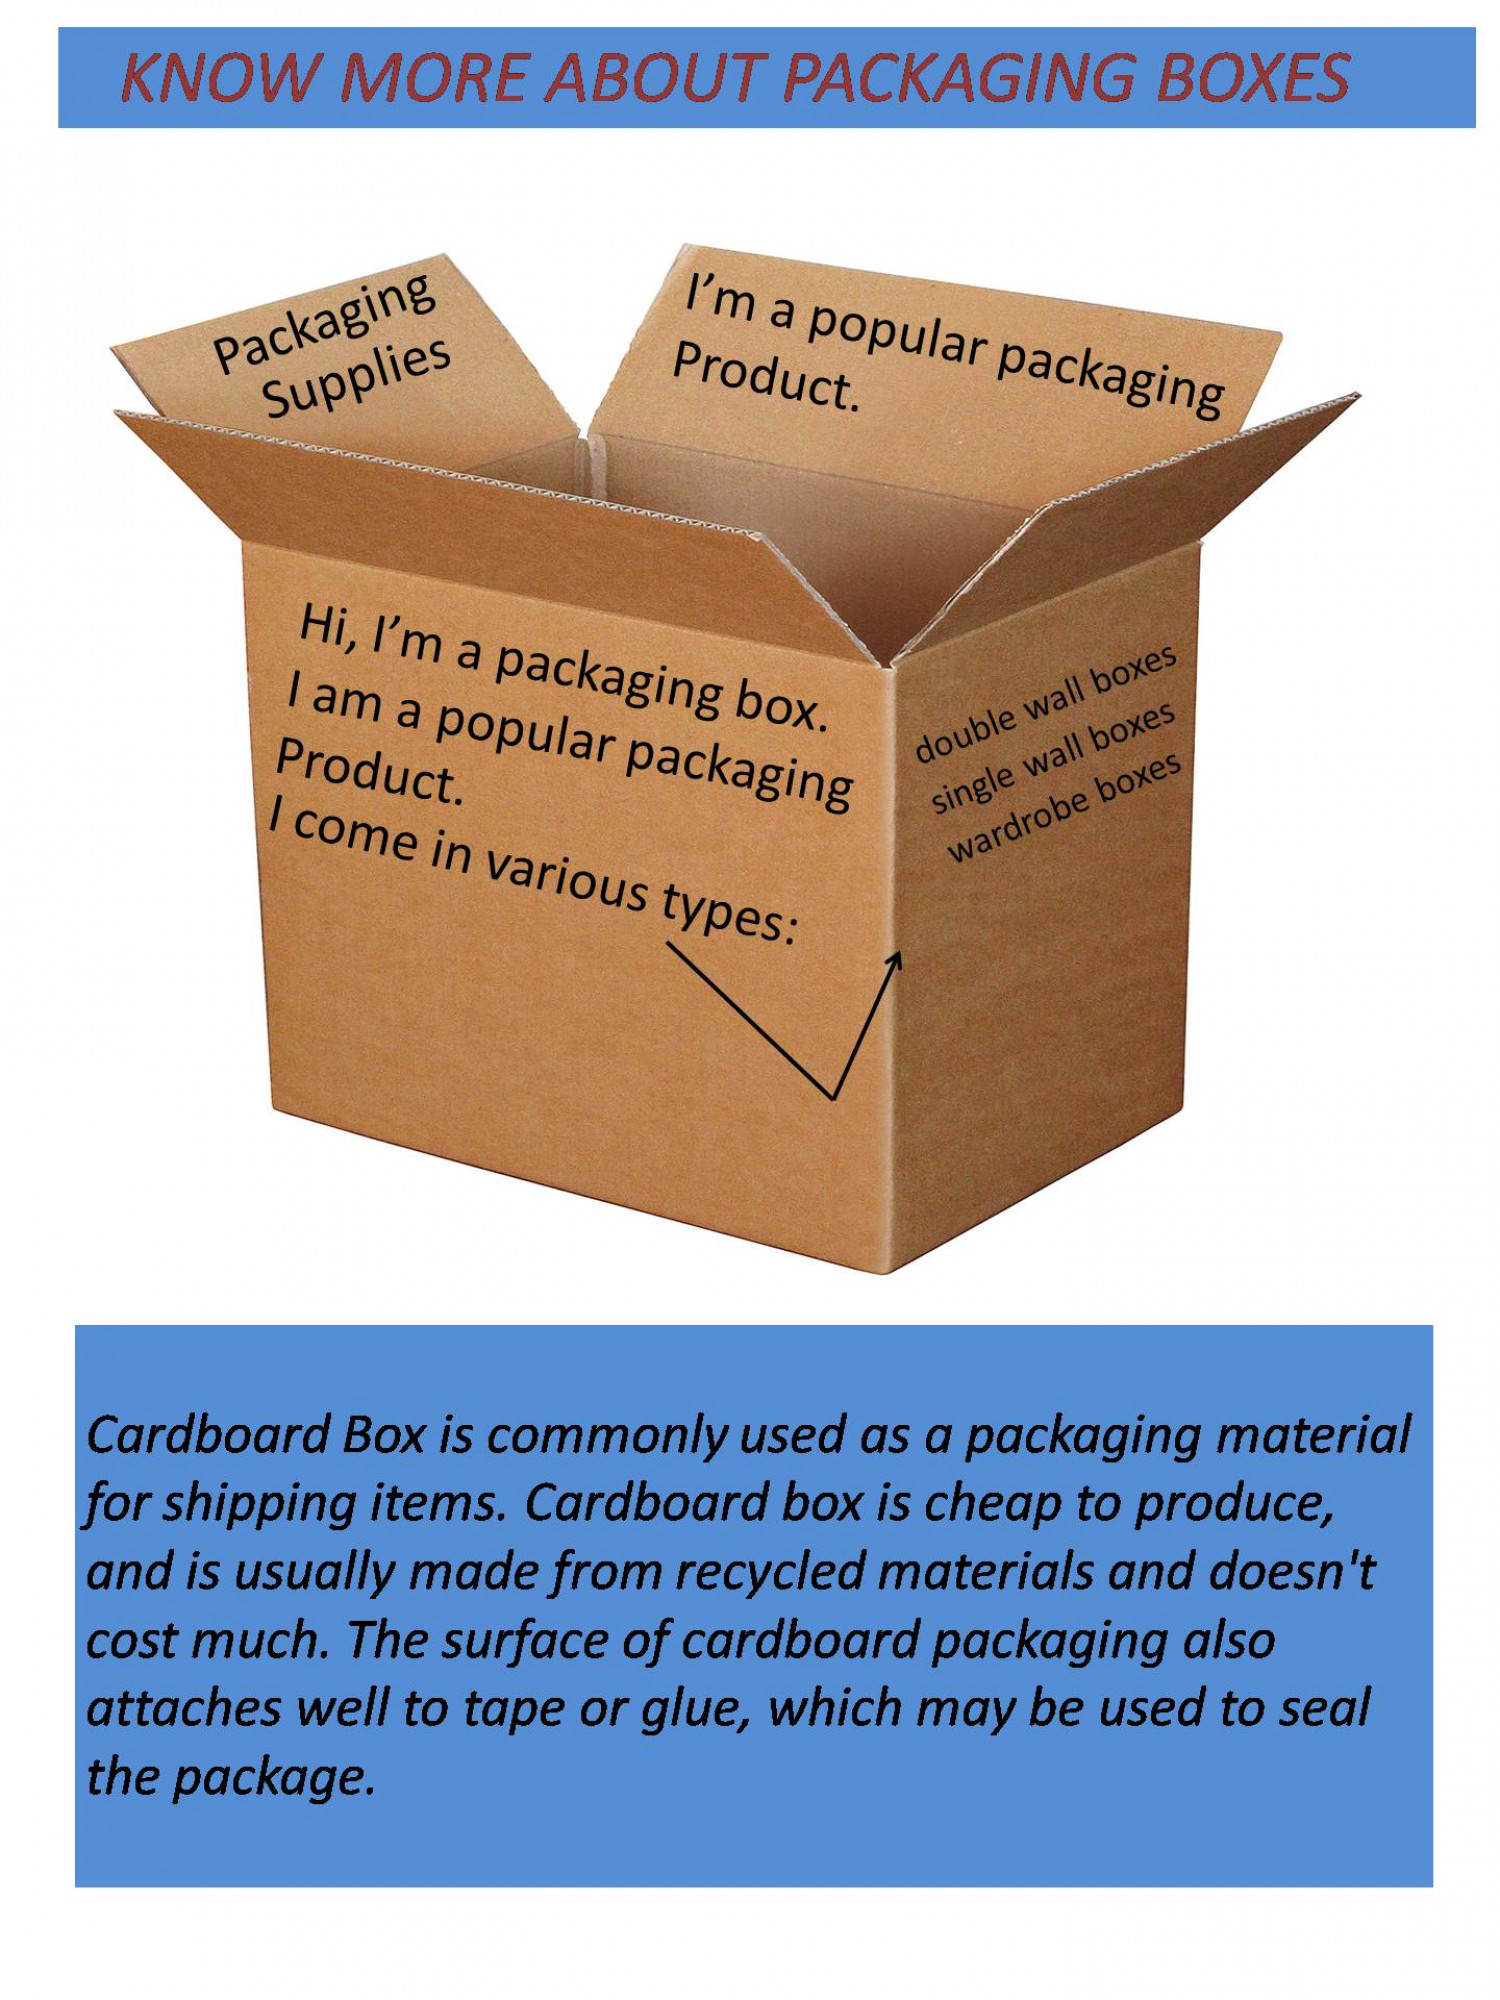 Know More About Packaging Boxes! Infographic